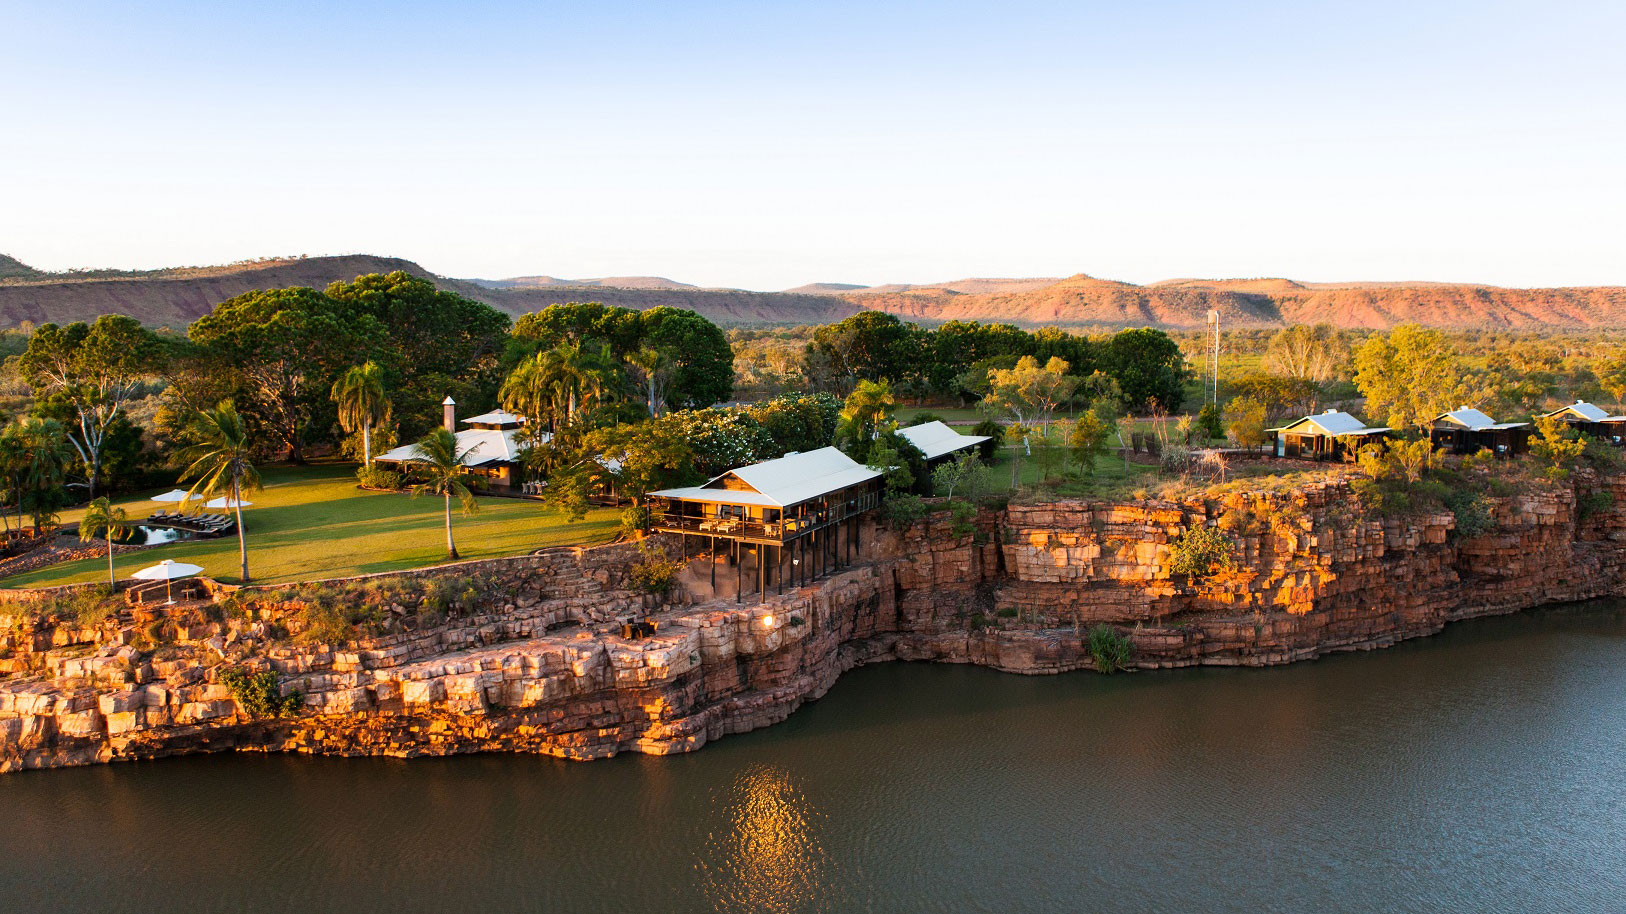 Thumbnail for the listing 'El Questro – Ultimate Luxury in The Kimberly Australia'